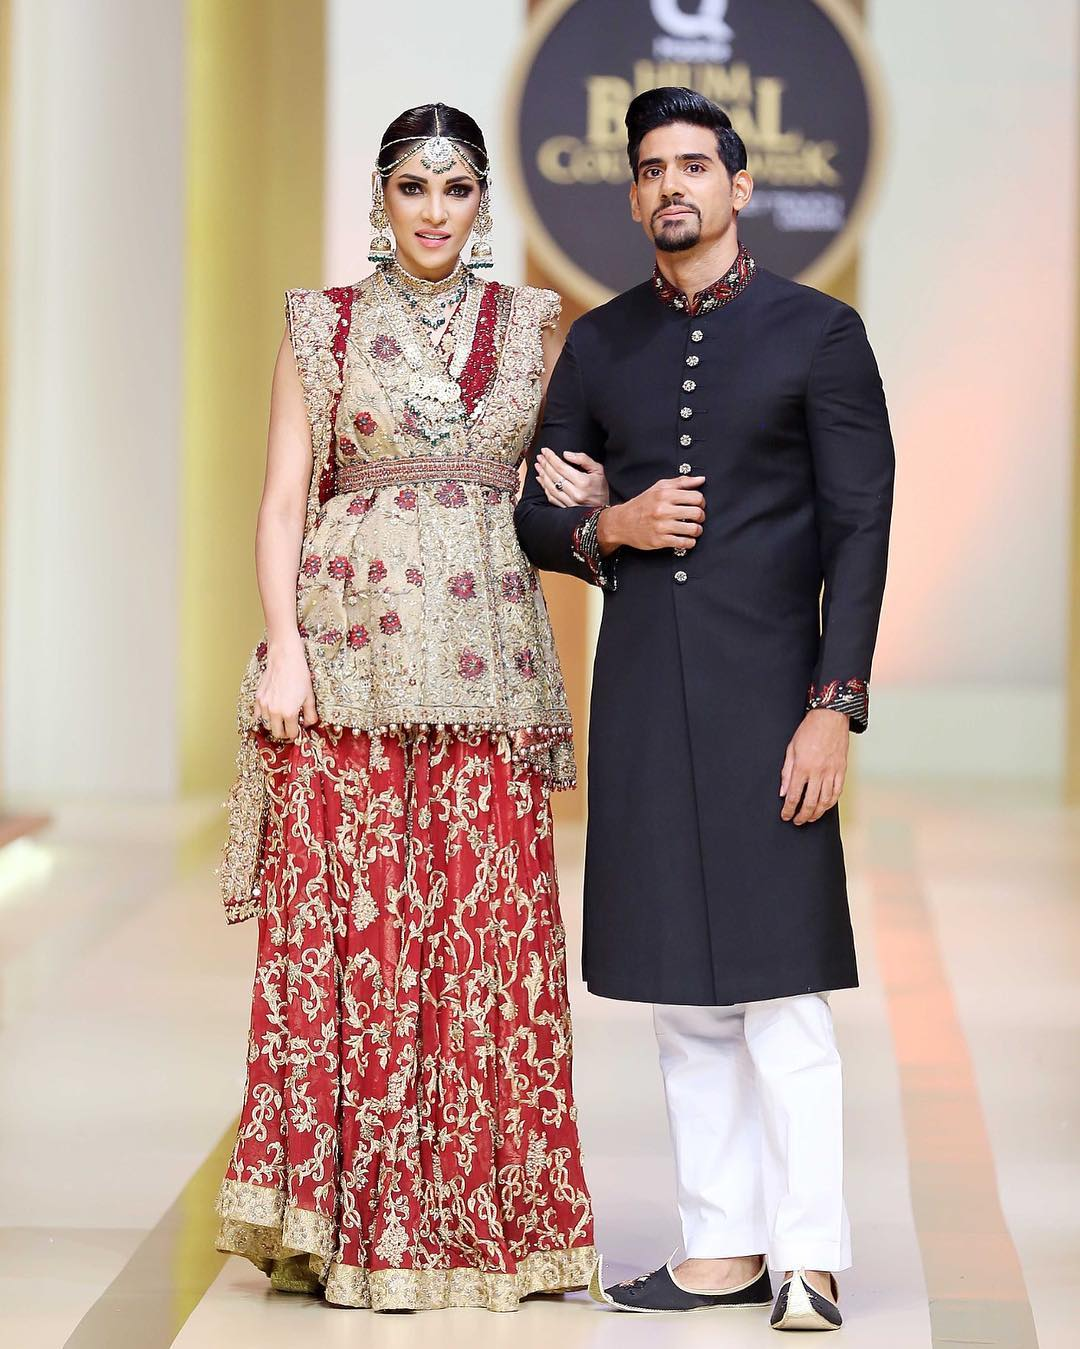 Zhalay Sarhadi as Show Stopper in QHBCW